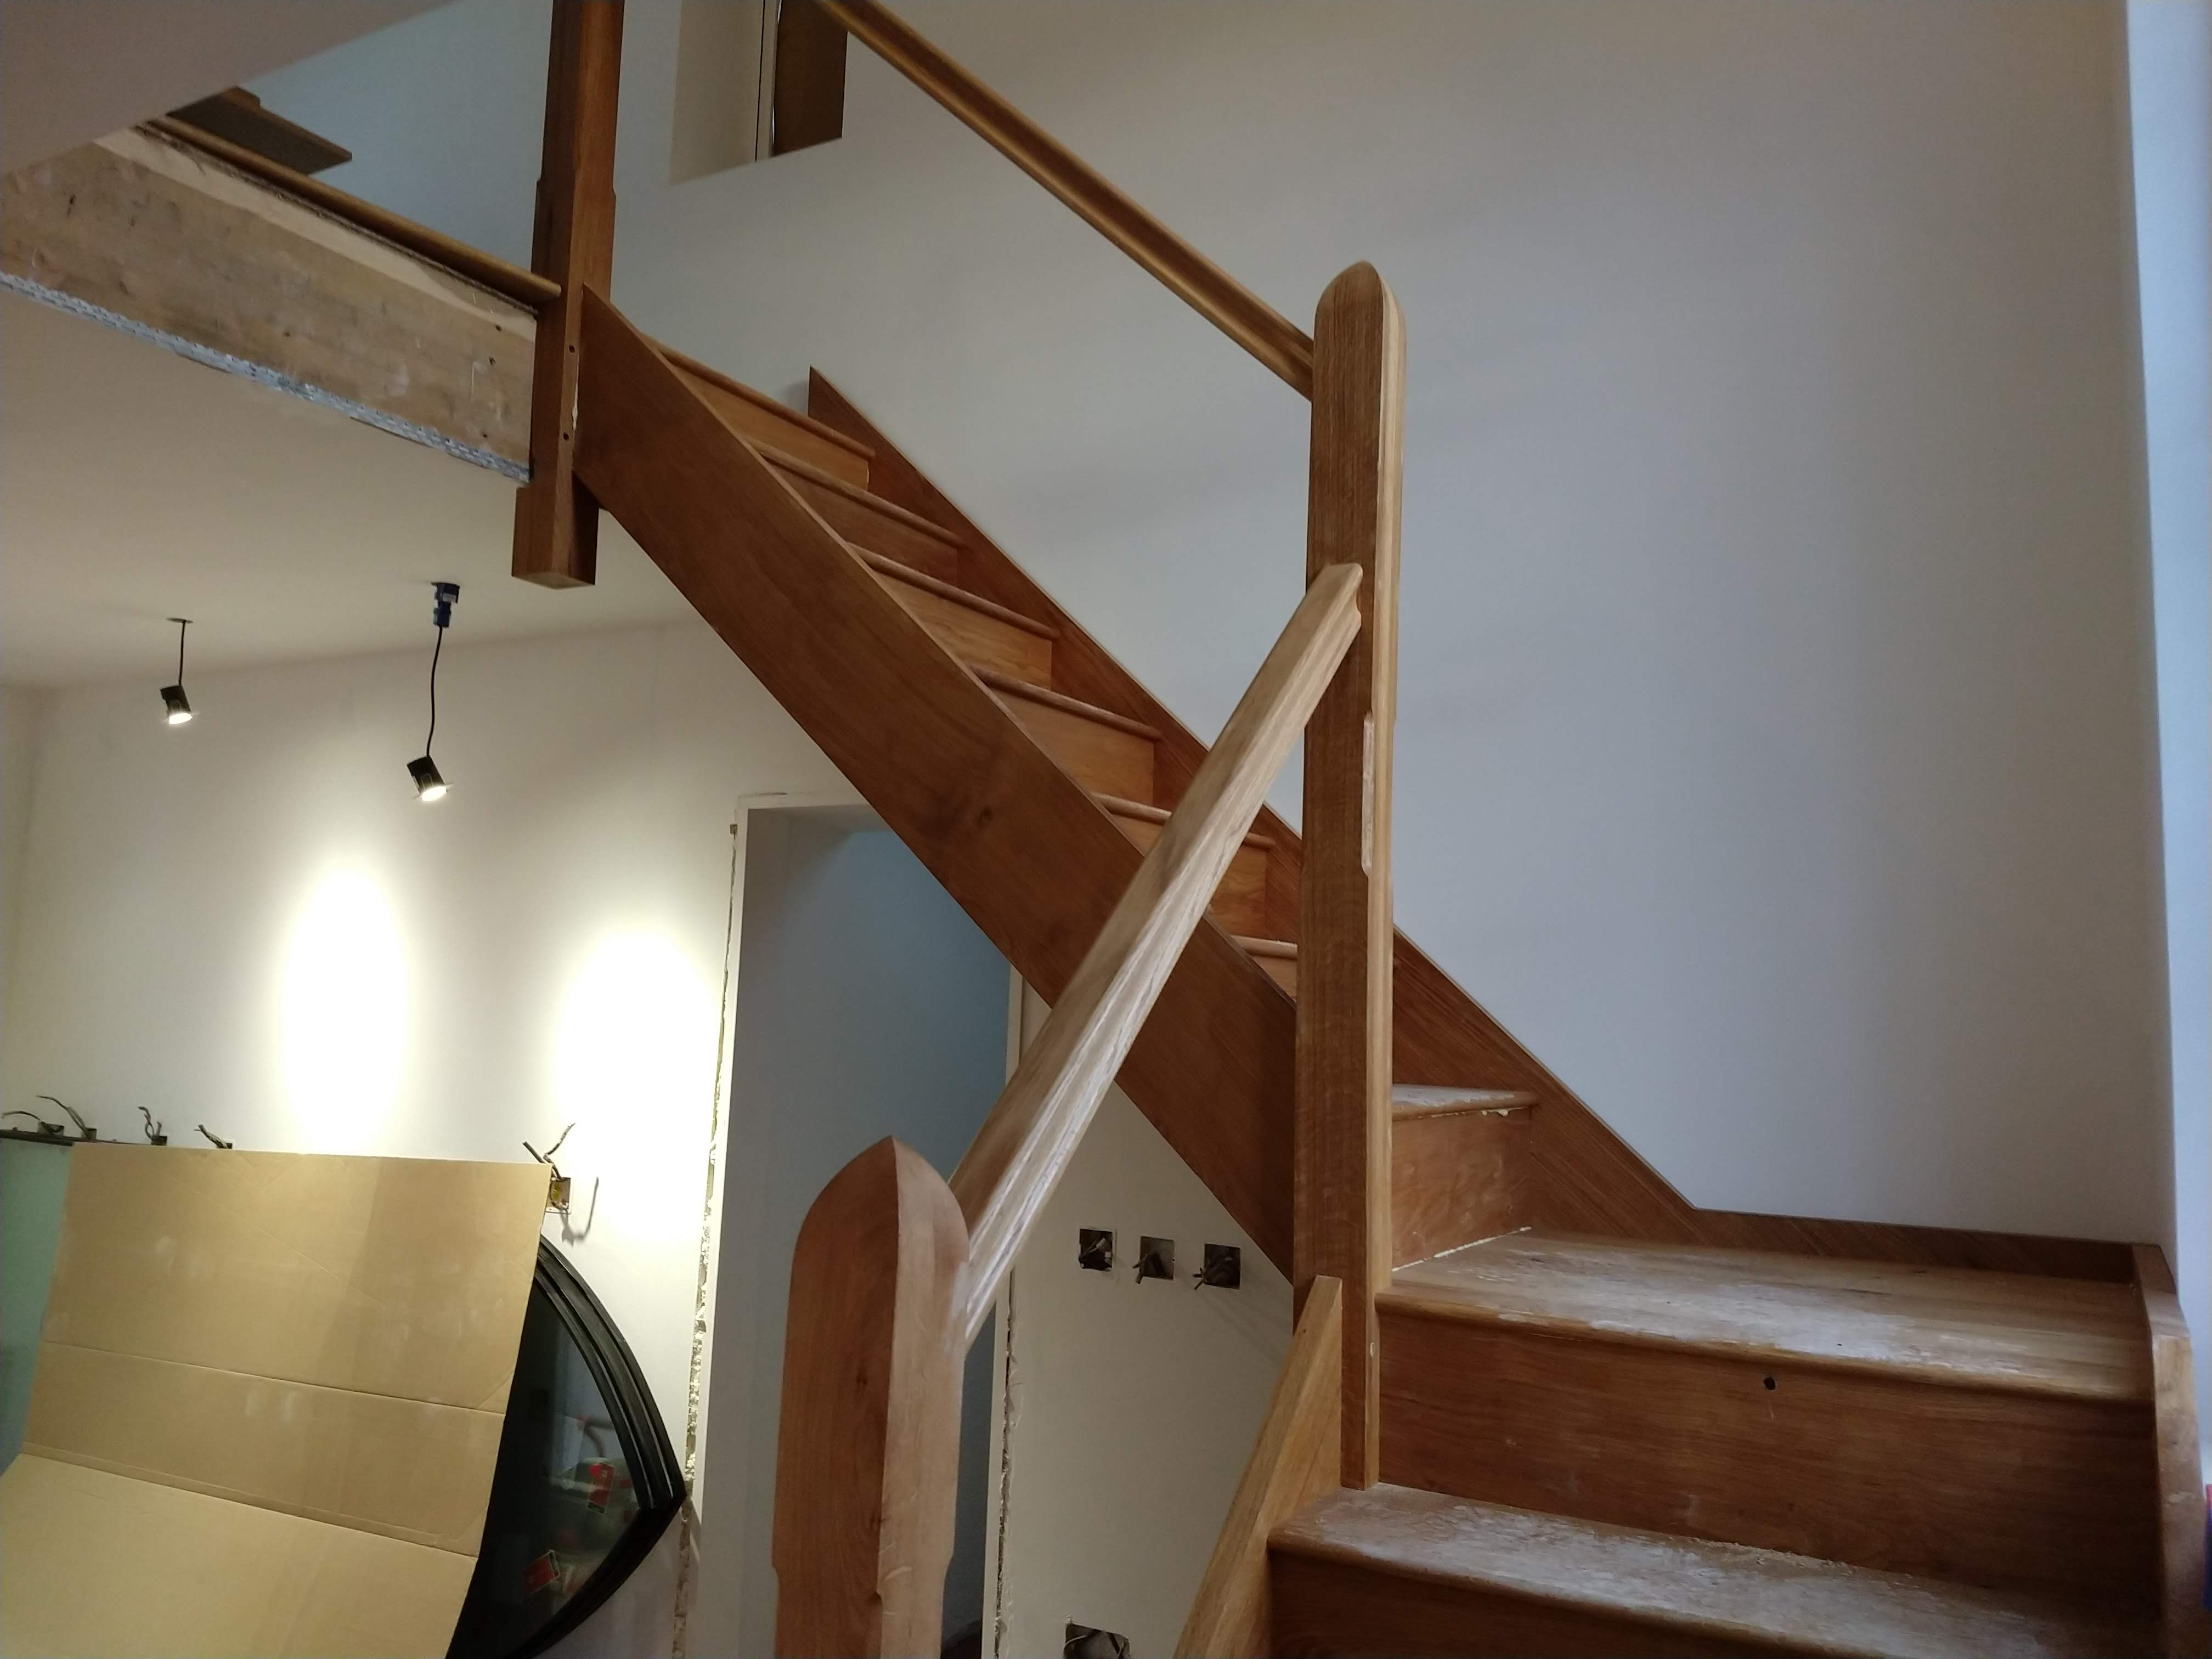 Bespoke staircase fitting 3